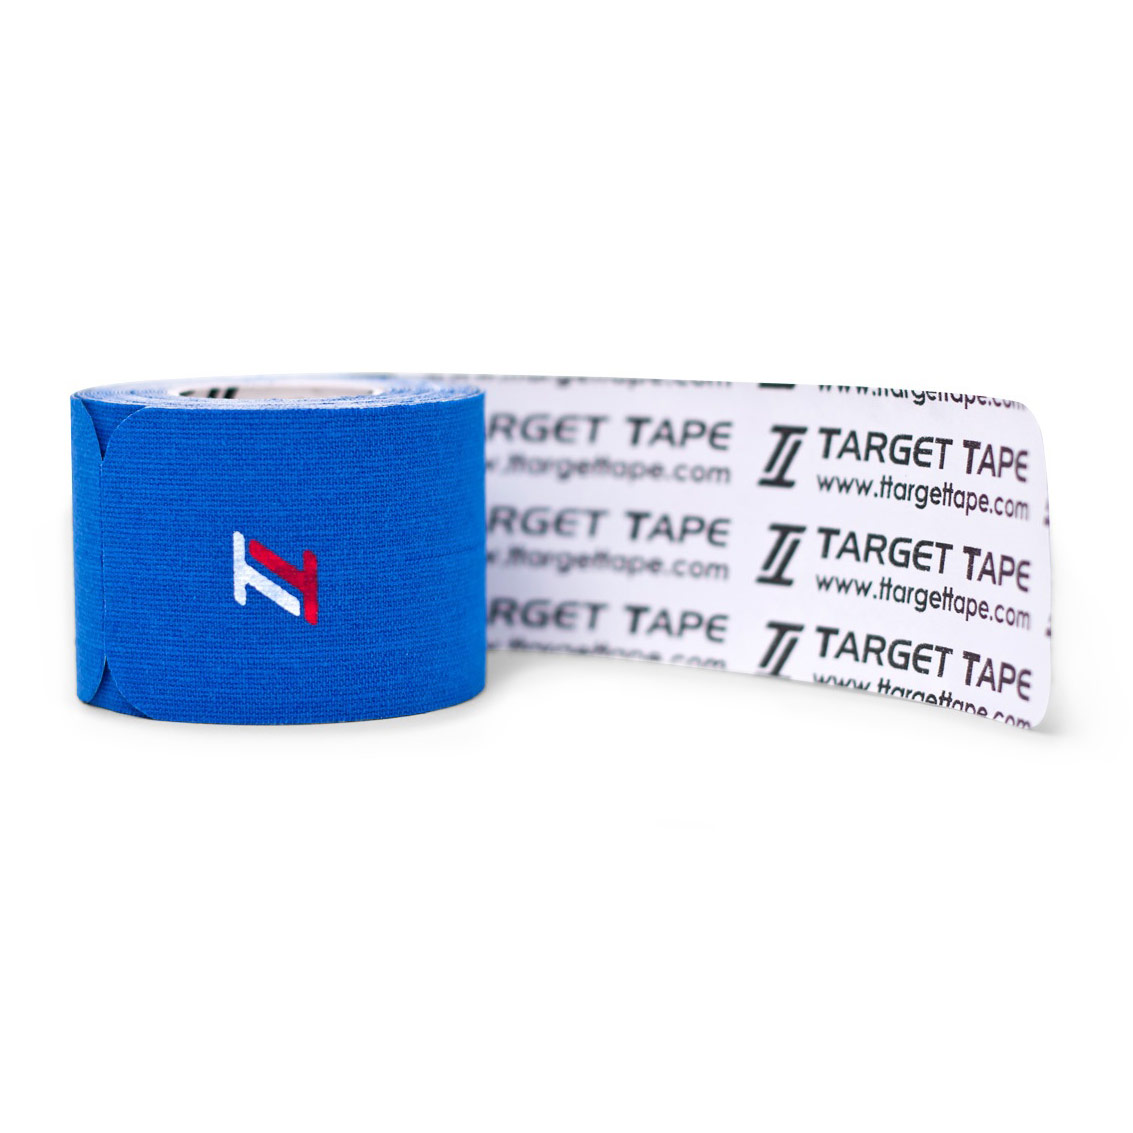 Target Tape kinesiology tape roll